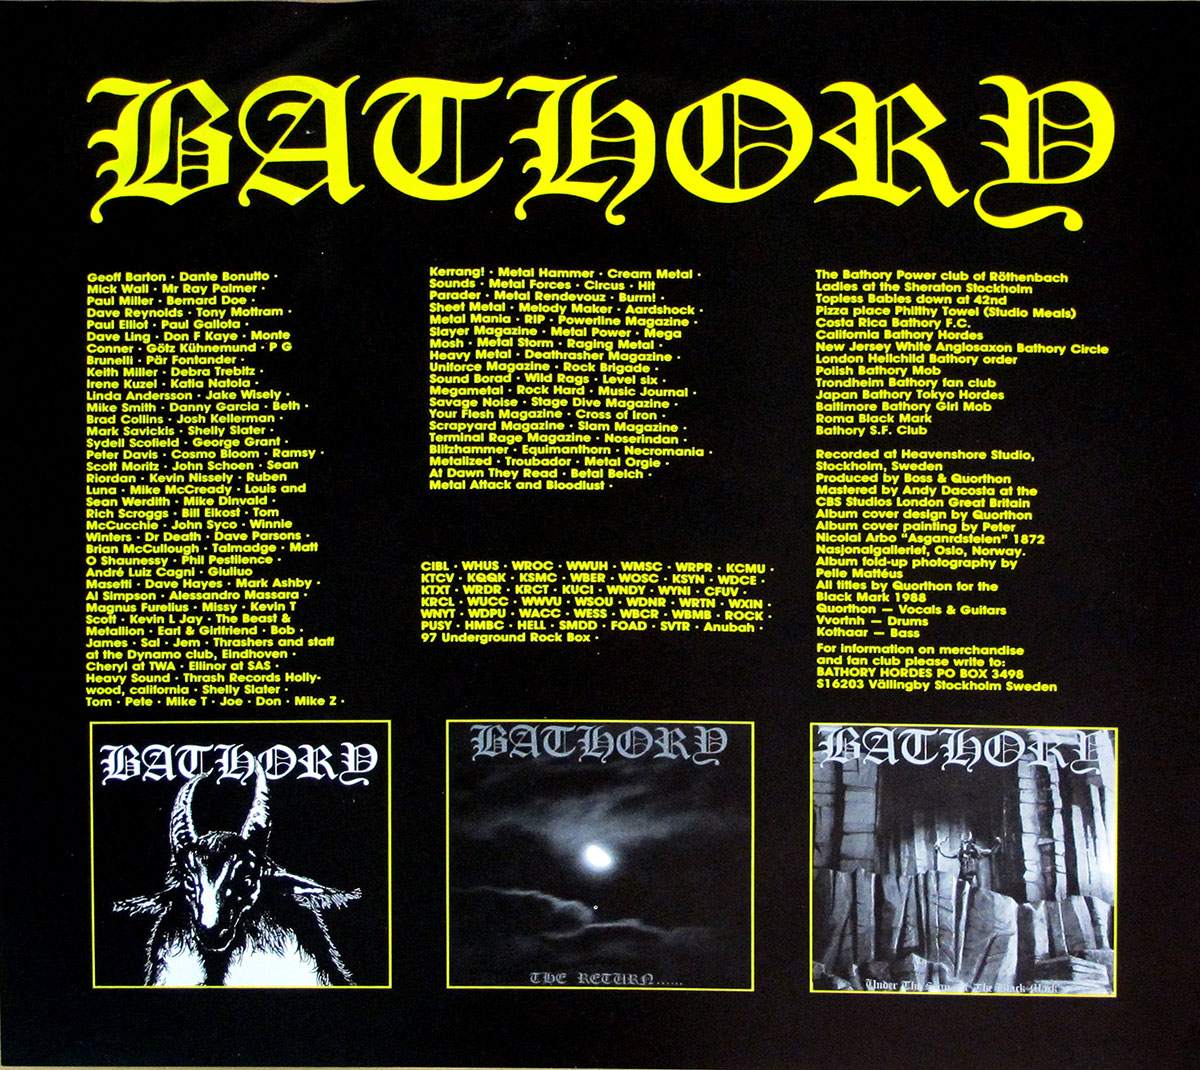 "BATHORY Blood Fire Death Foc Gatefold Rare France Incl Lyrics Sheet 12"" Lp Vinyl"